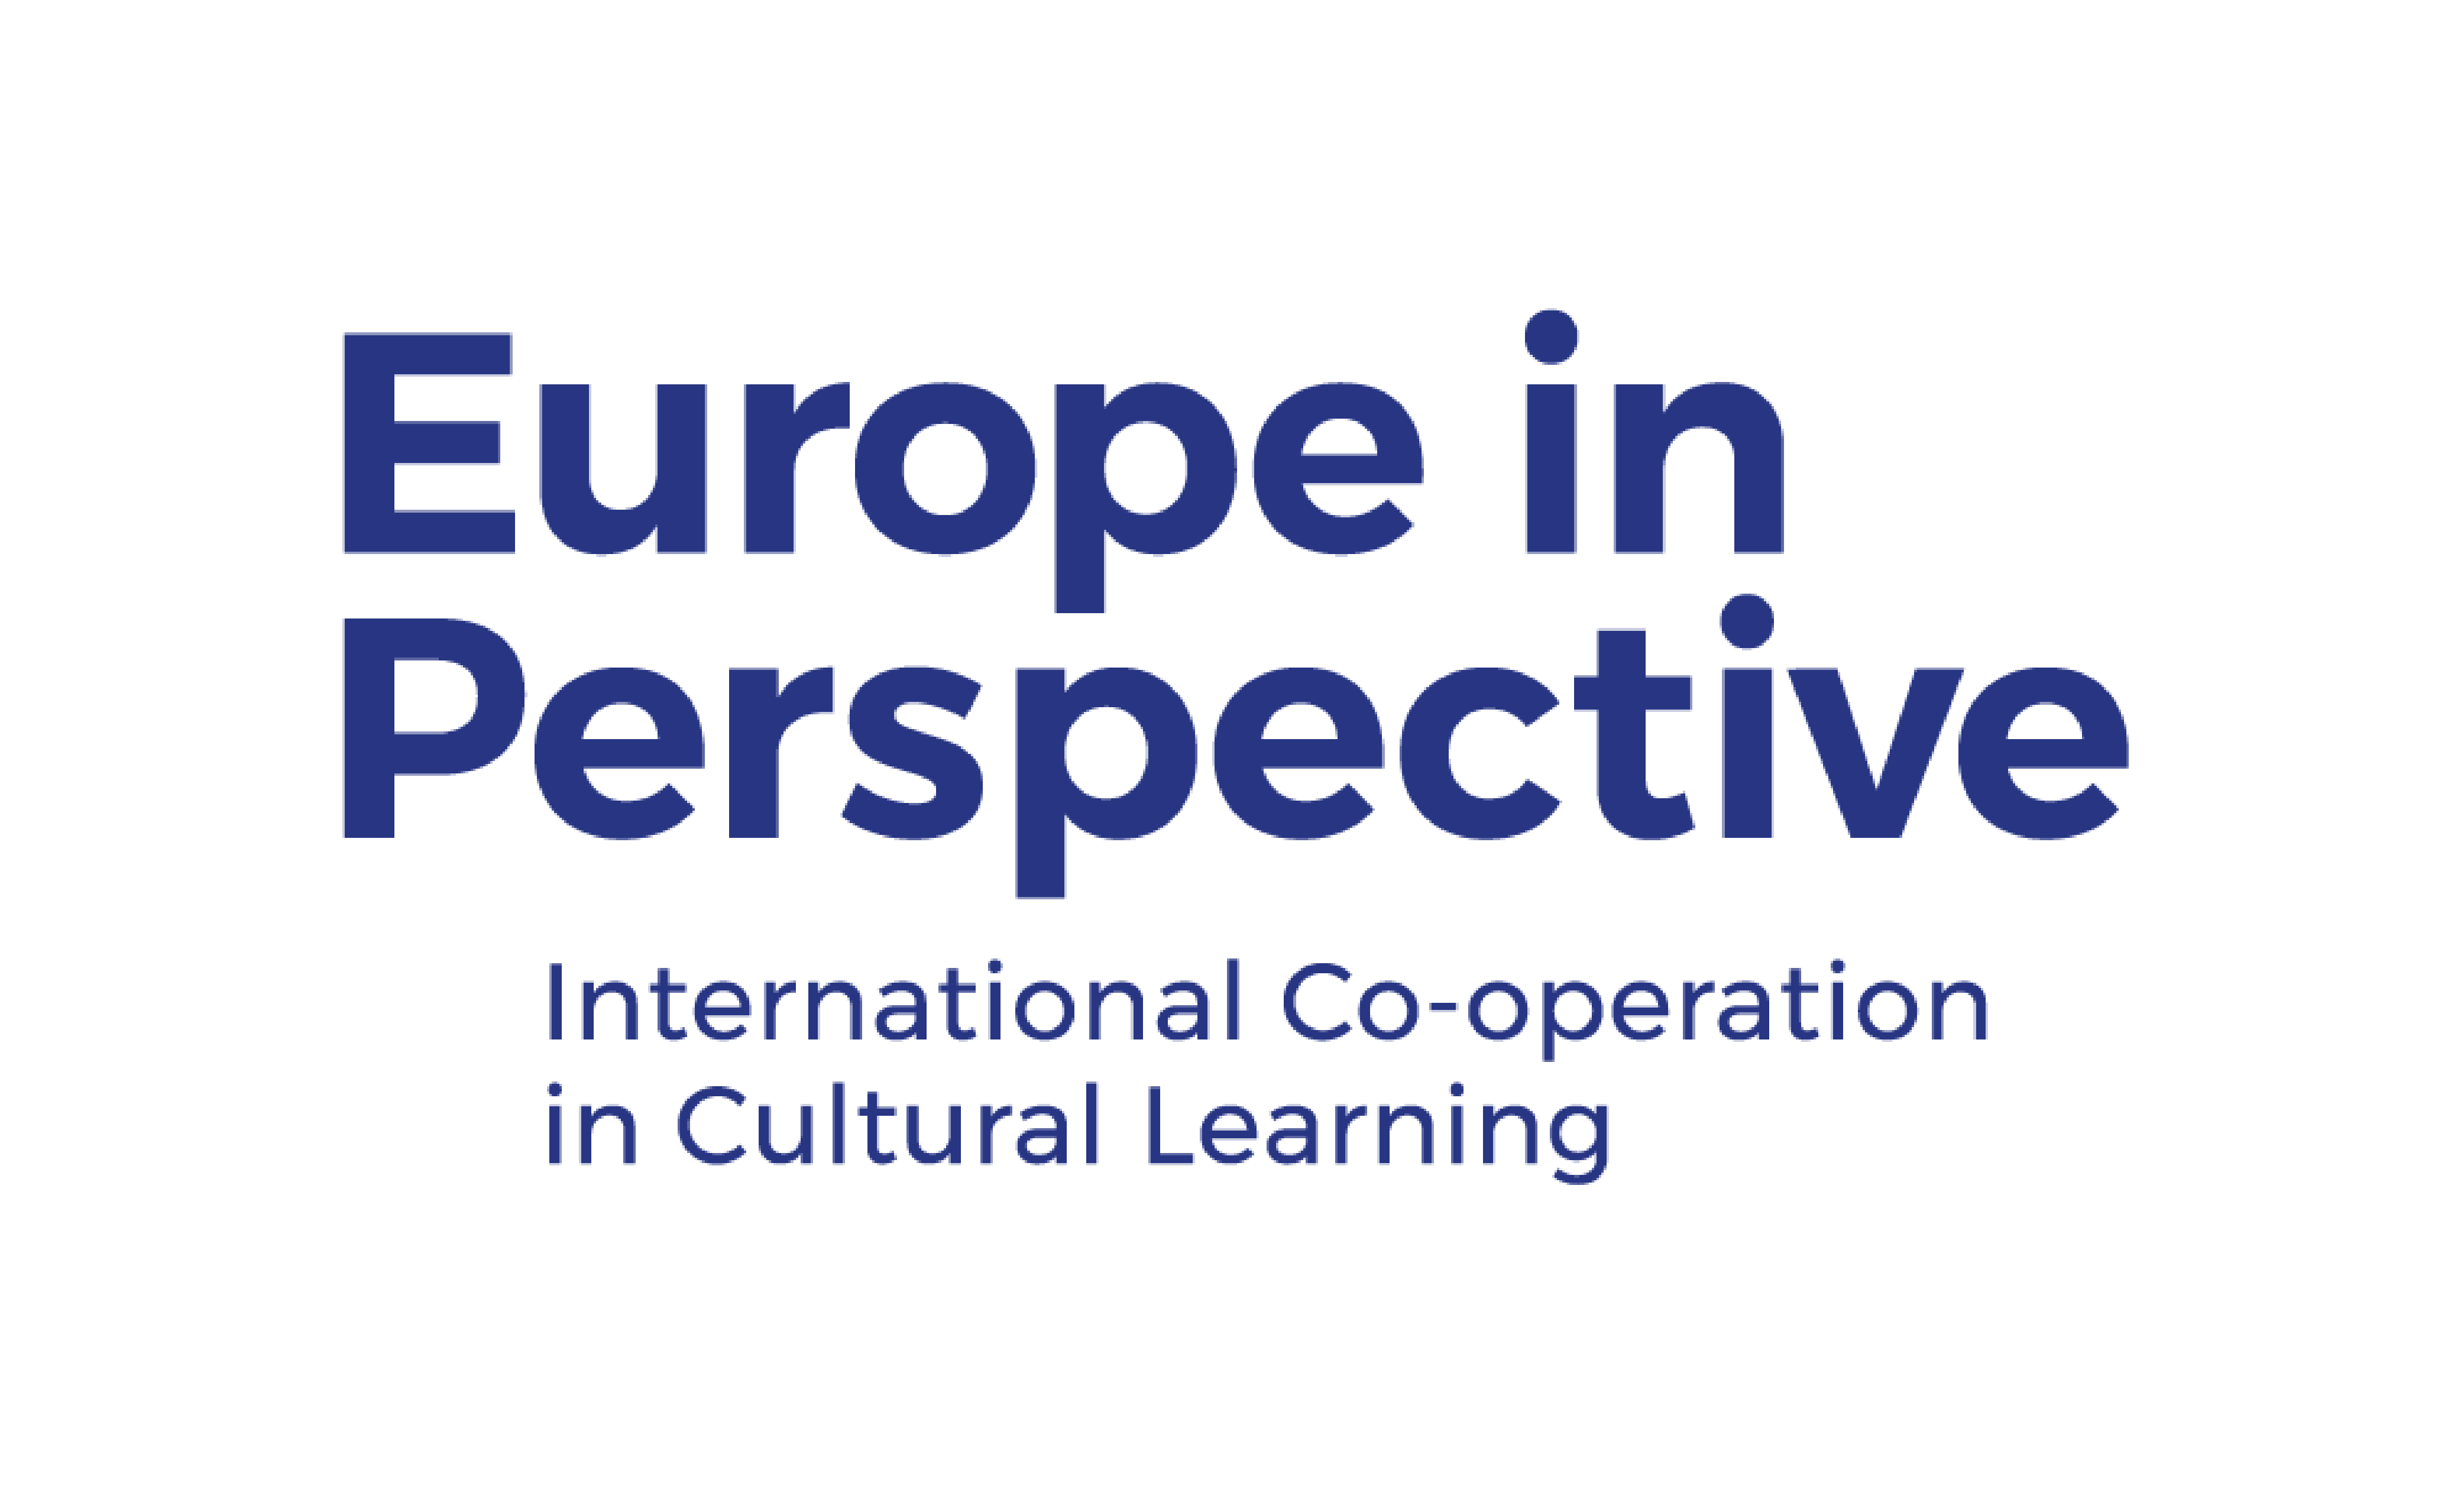 International Co-operation in Cultural Learning